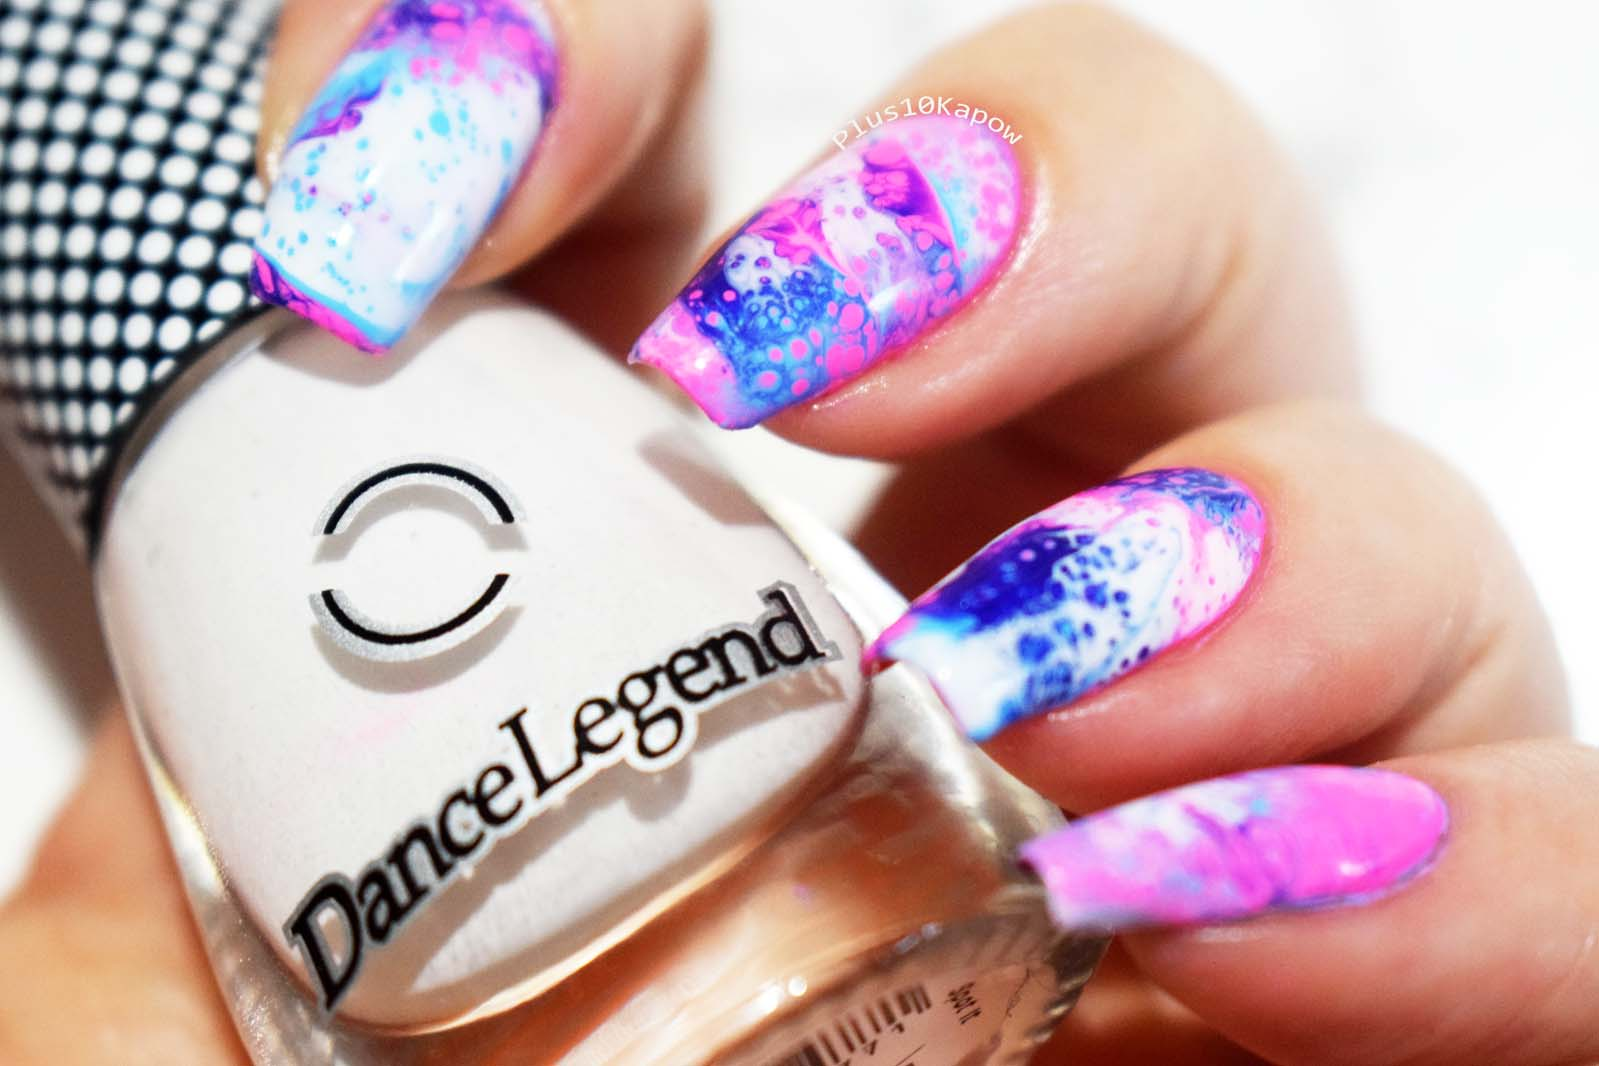 Dance Legend Spot it! White Fluid nail art